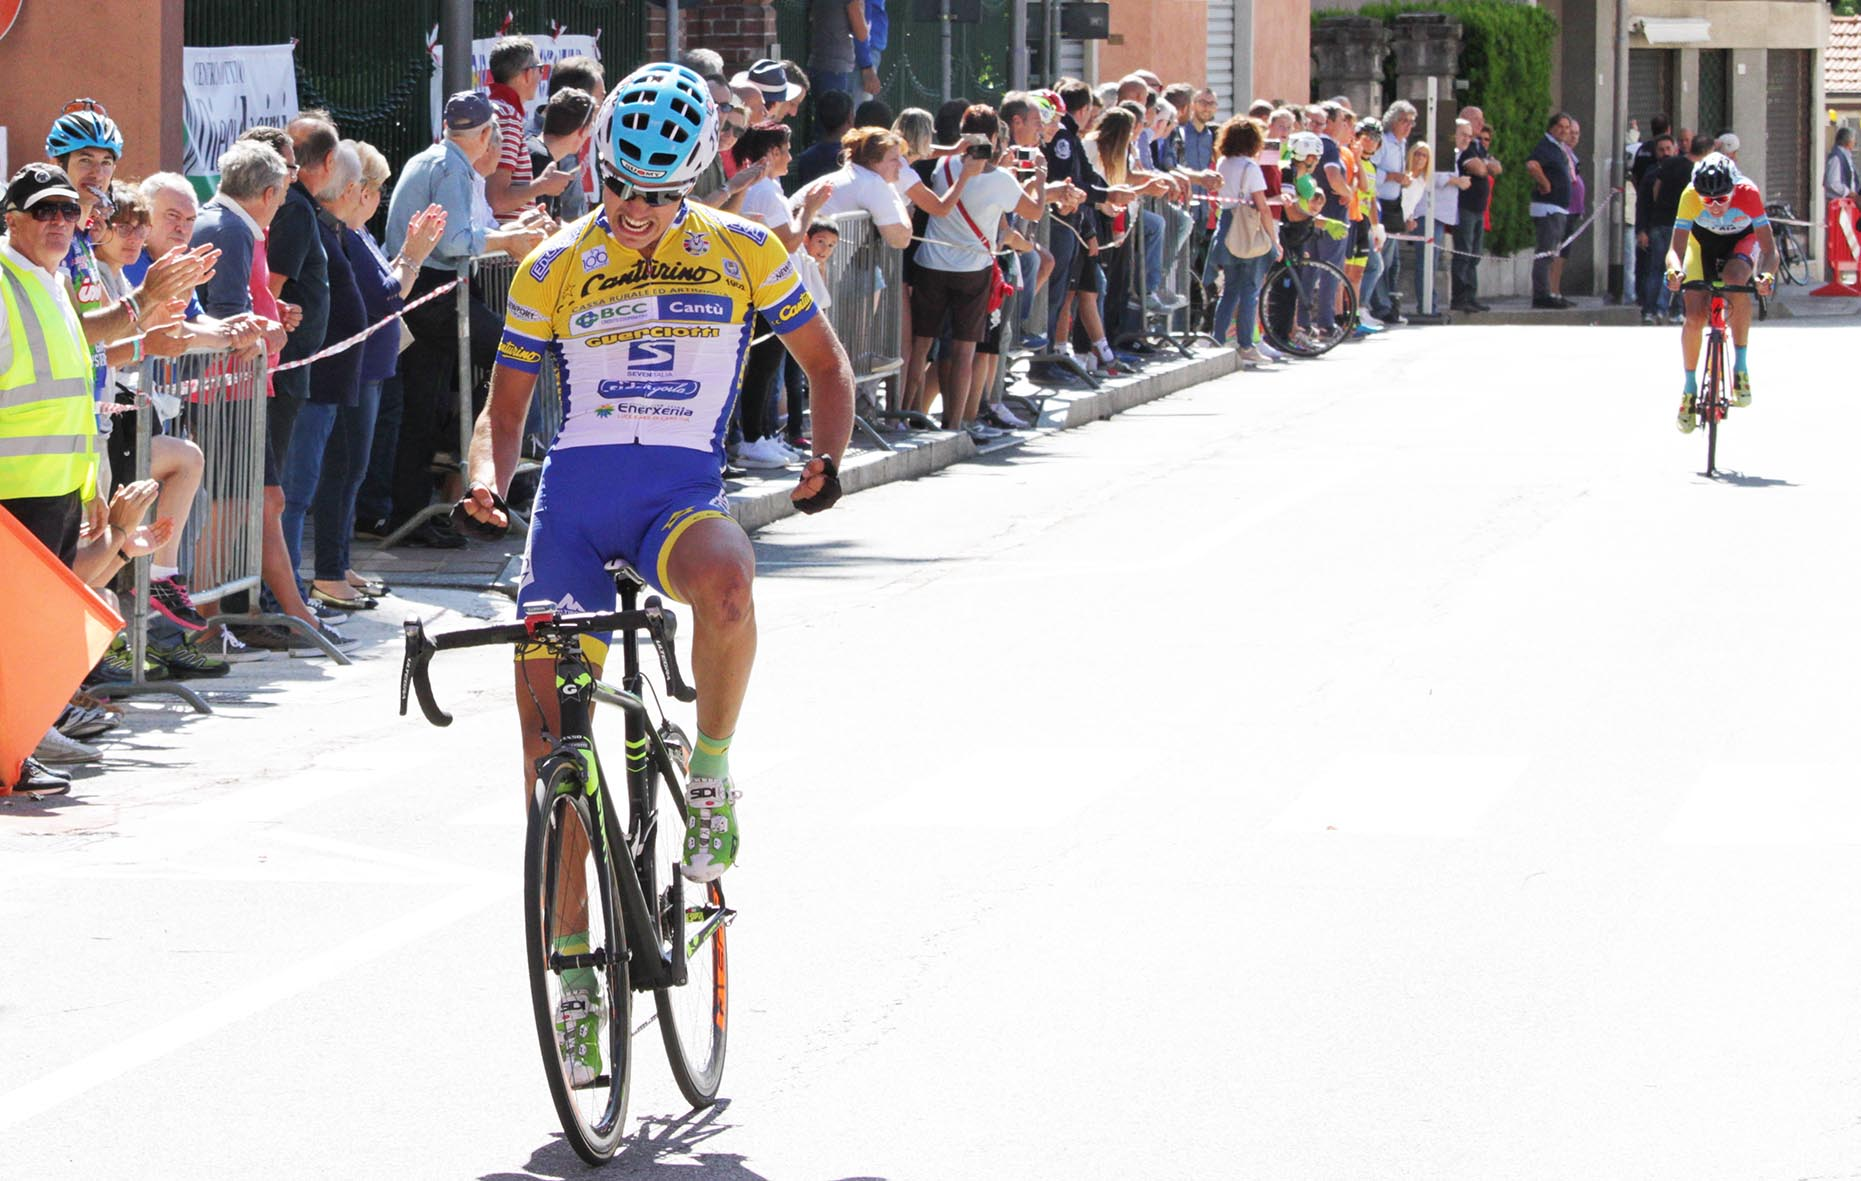 Marco Casarini vince a Pombia